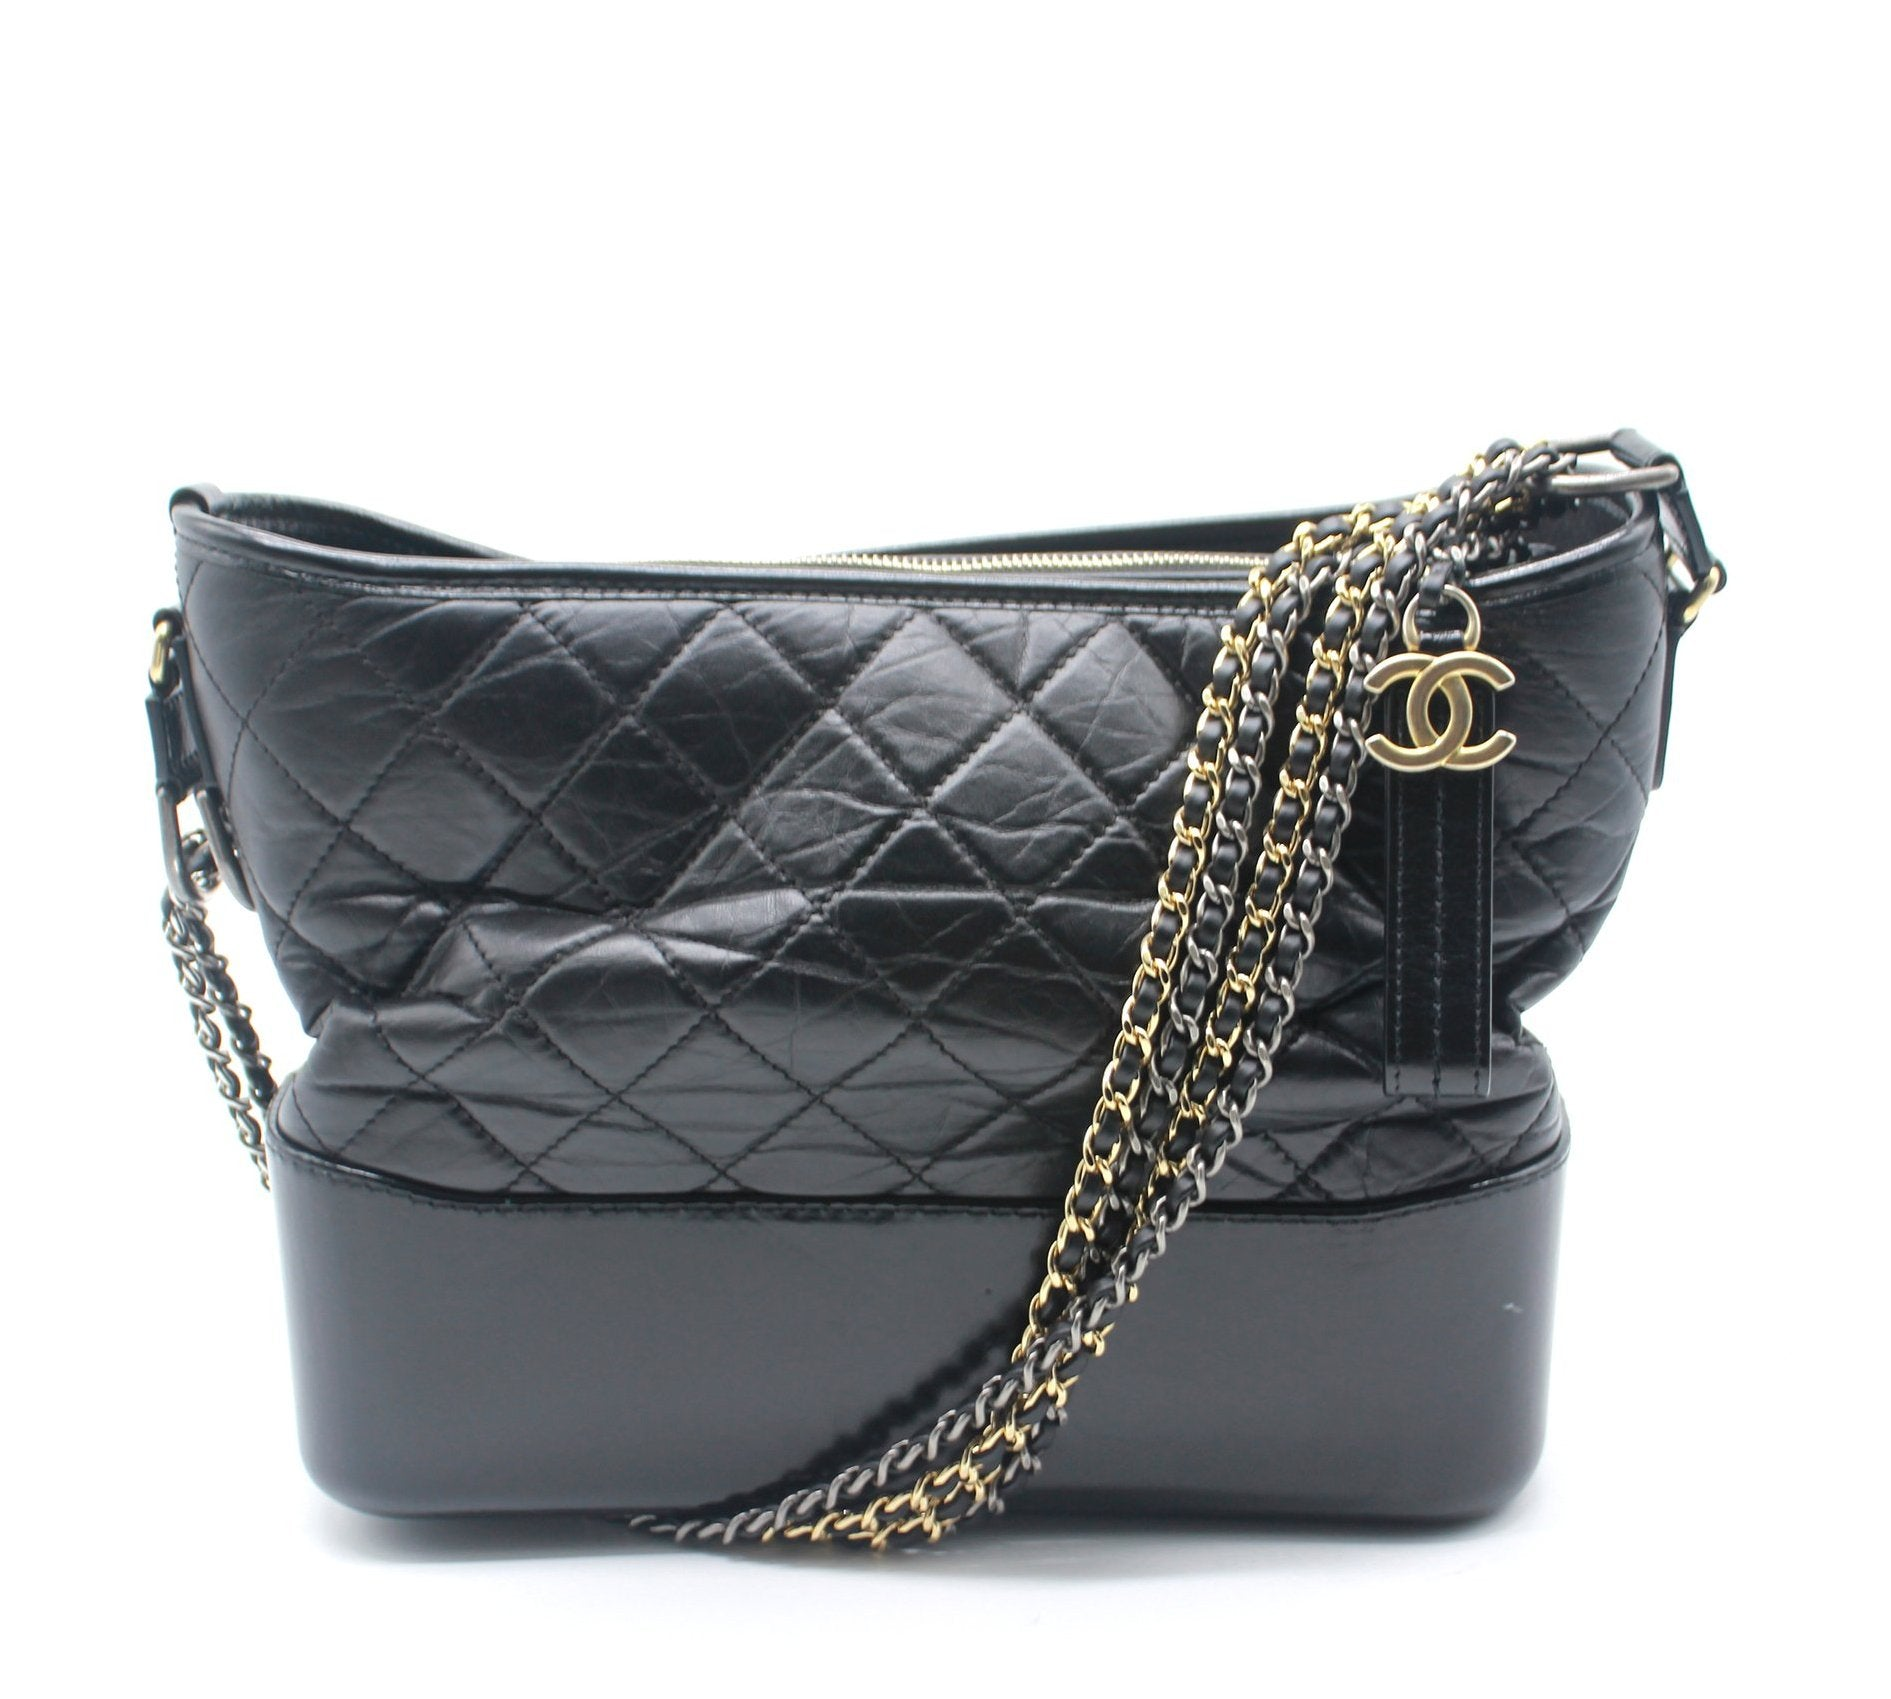 Black Quilted Aged Calfskin Leather Gabrielle Hobo Bag